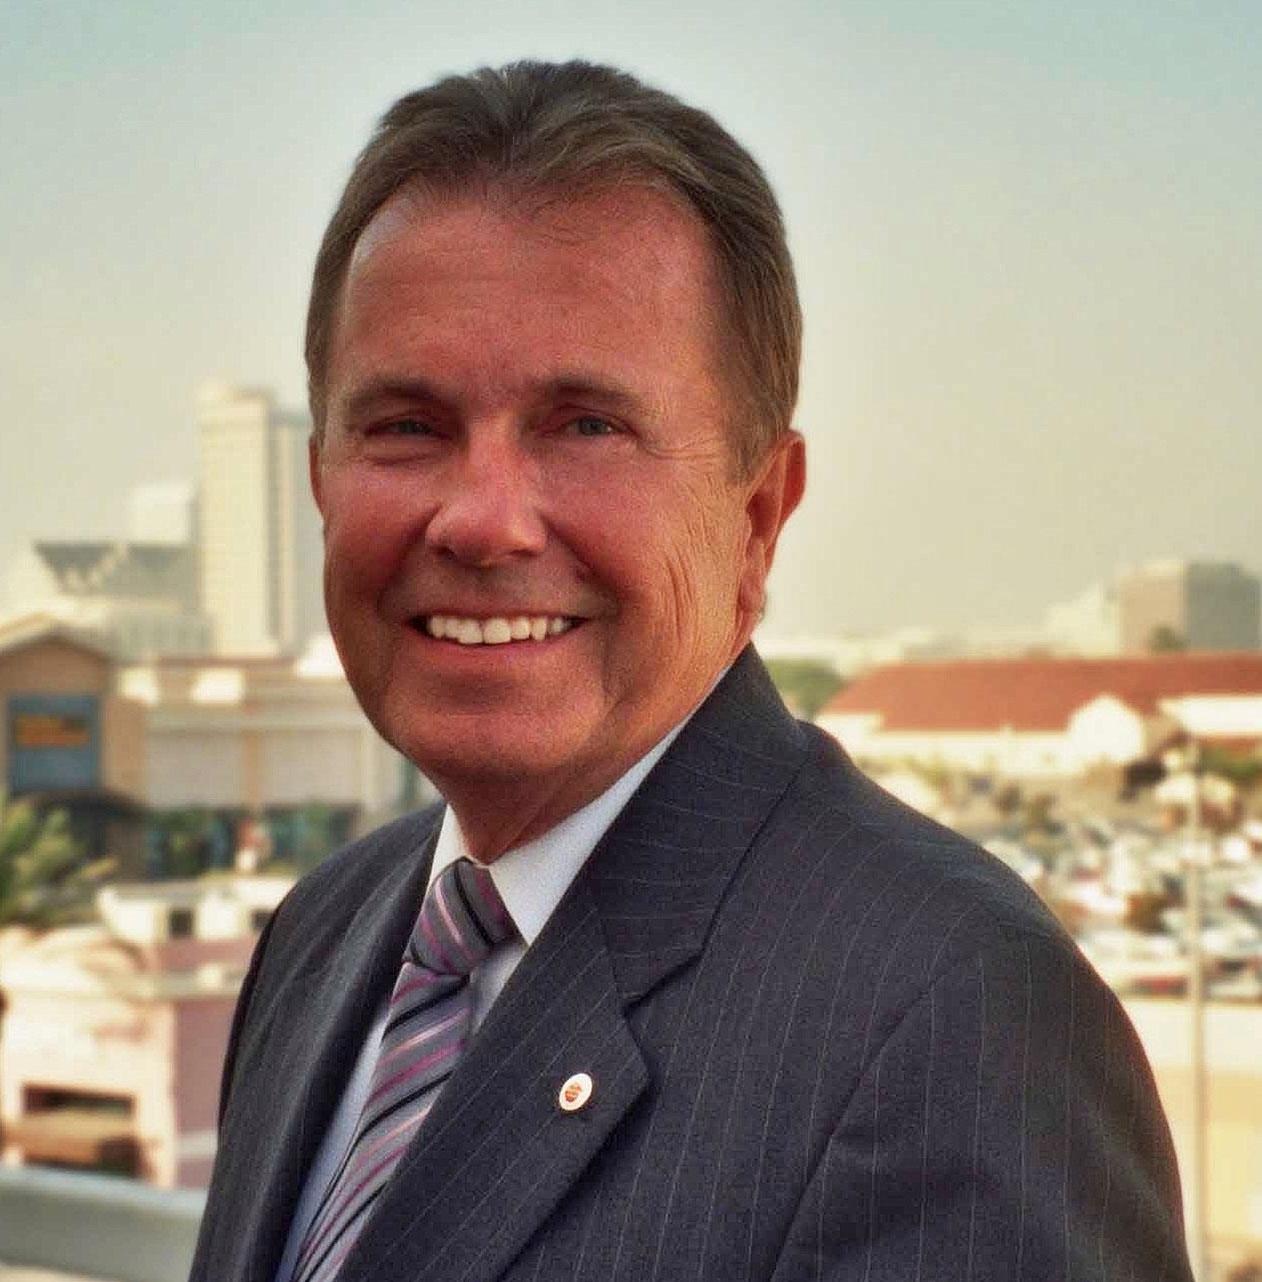 City of Alameda - Glenn Steiger will be filling the role of Alameda Municipal Power's new general manager.